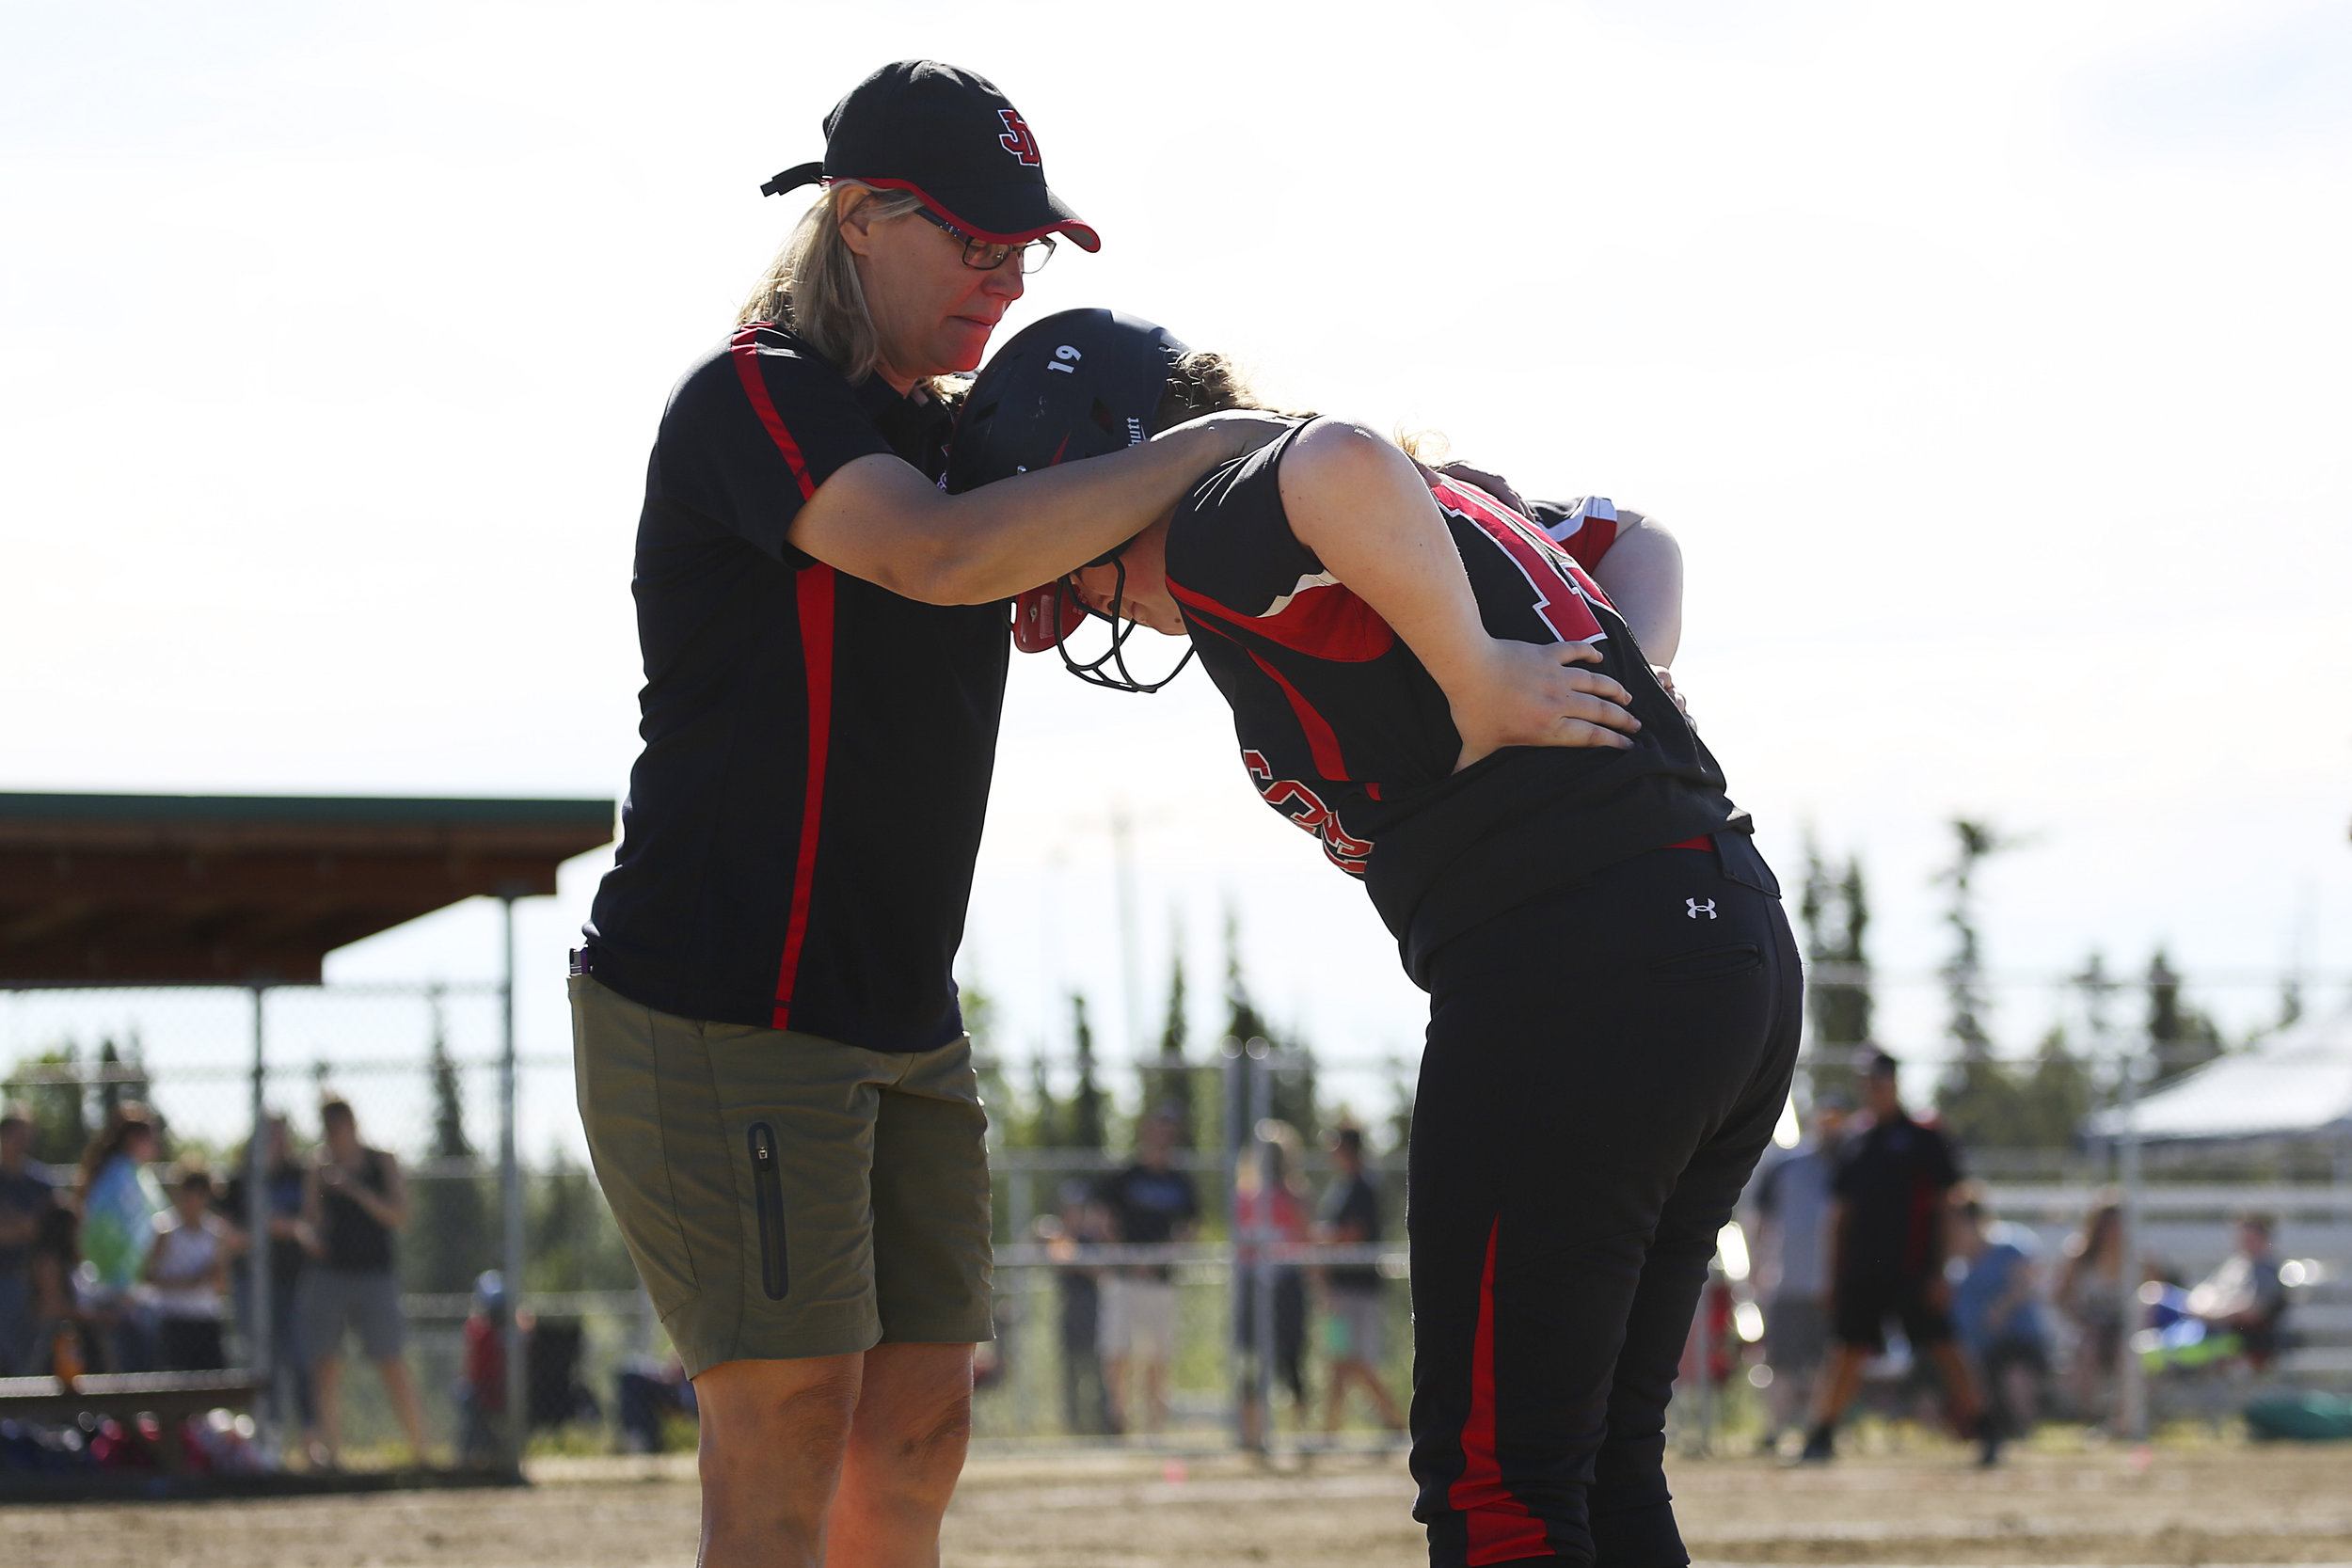 Juneau Douglas, Mia Loree (19) (right) grabs her back in pain and leans into her coach, Annie Kincheloe (left) for support after trying to sprint to first base in a game against Thunder Mountain on Saturday, June 3rd at the Softball State Championships in the South Davis Park Complex in Fairbanks, AK. Kincheloe walked Loree off the field and escorted to her to dugout. Sarah Manriquez/ Juneau Empire